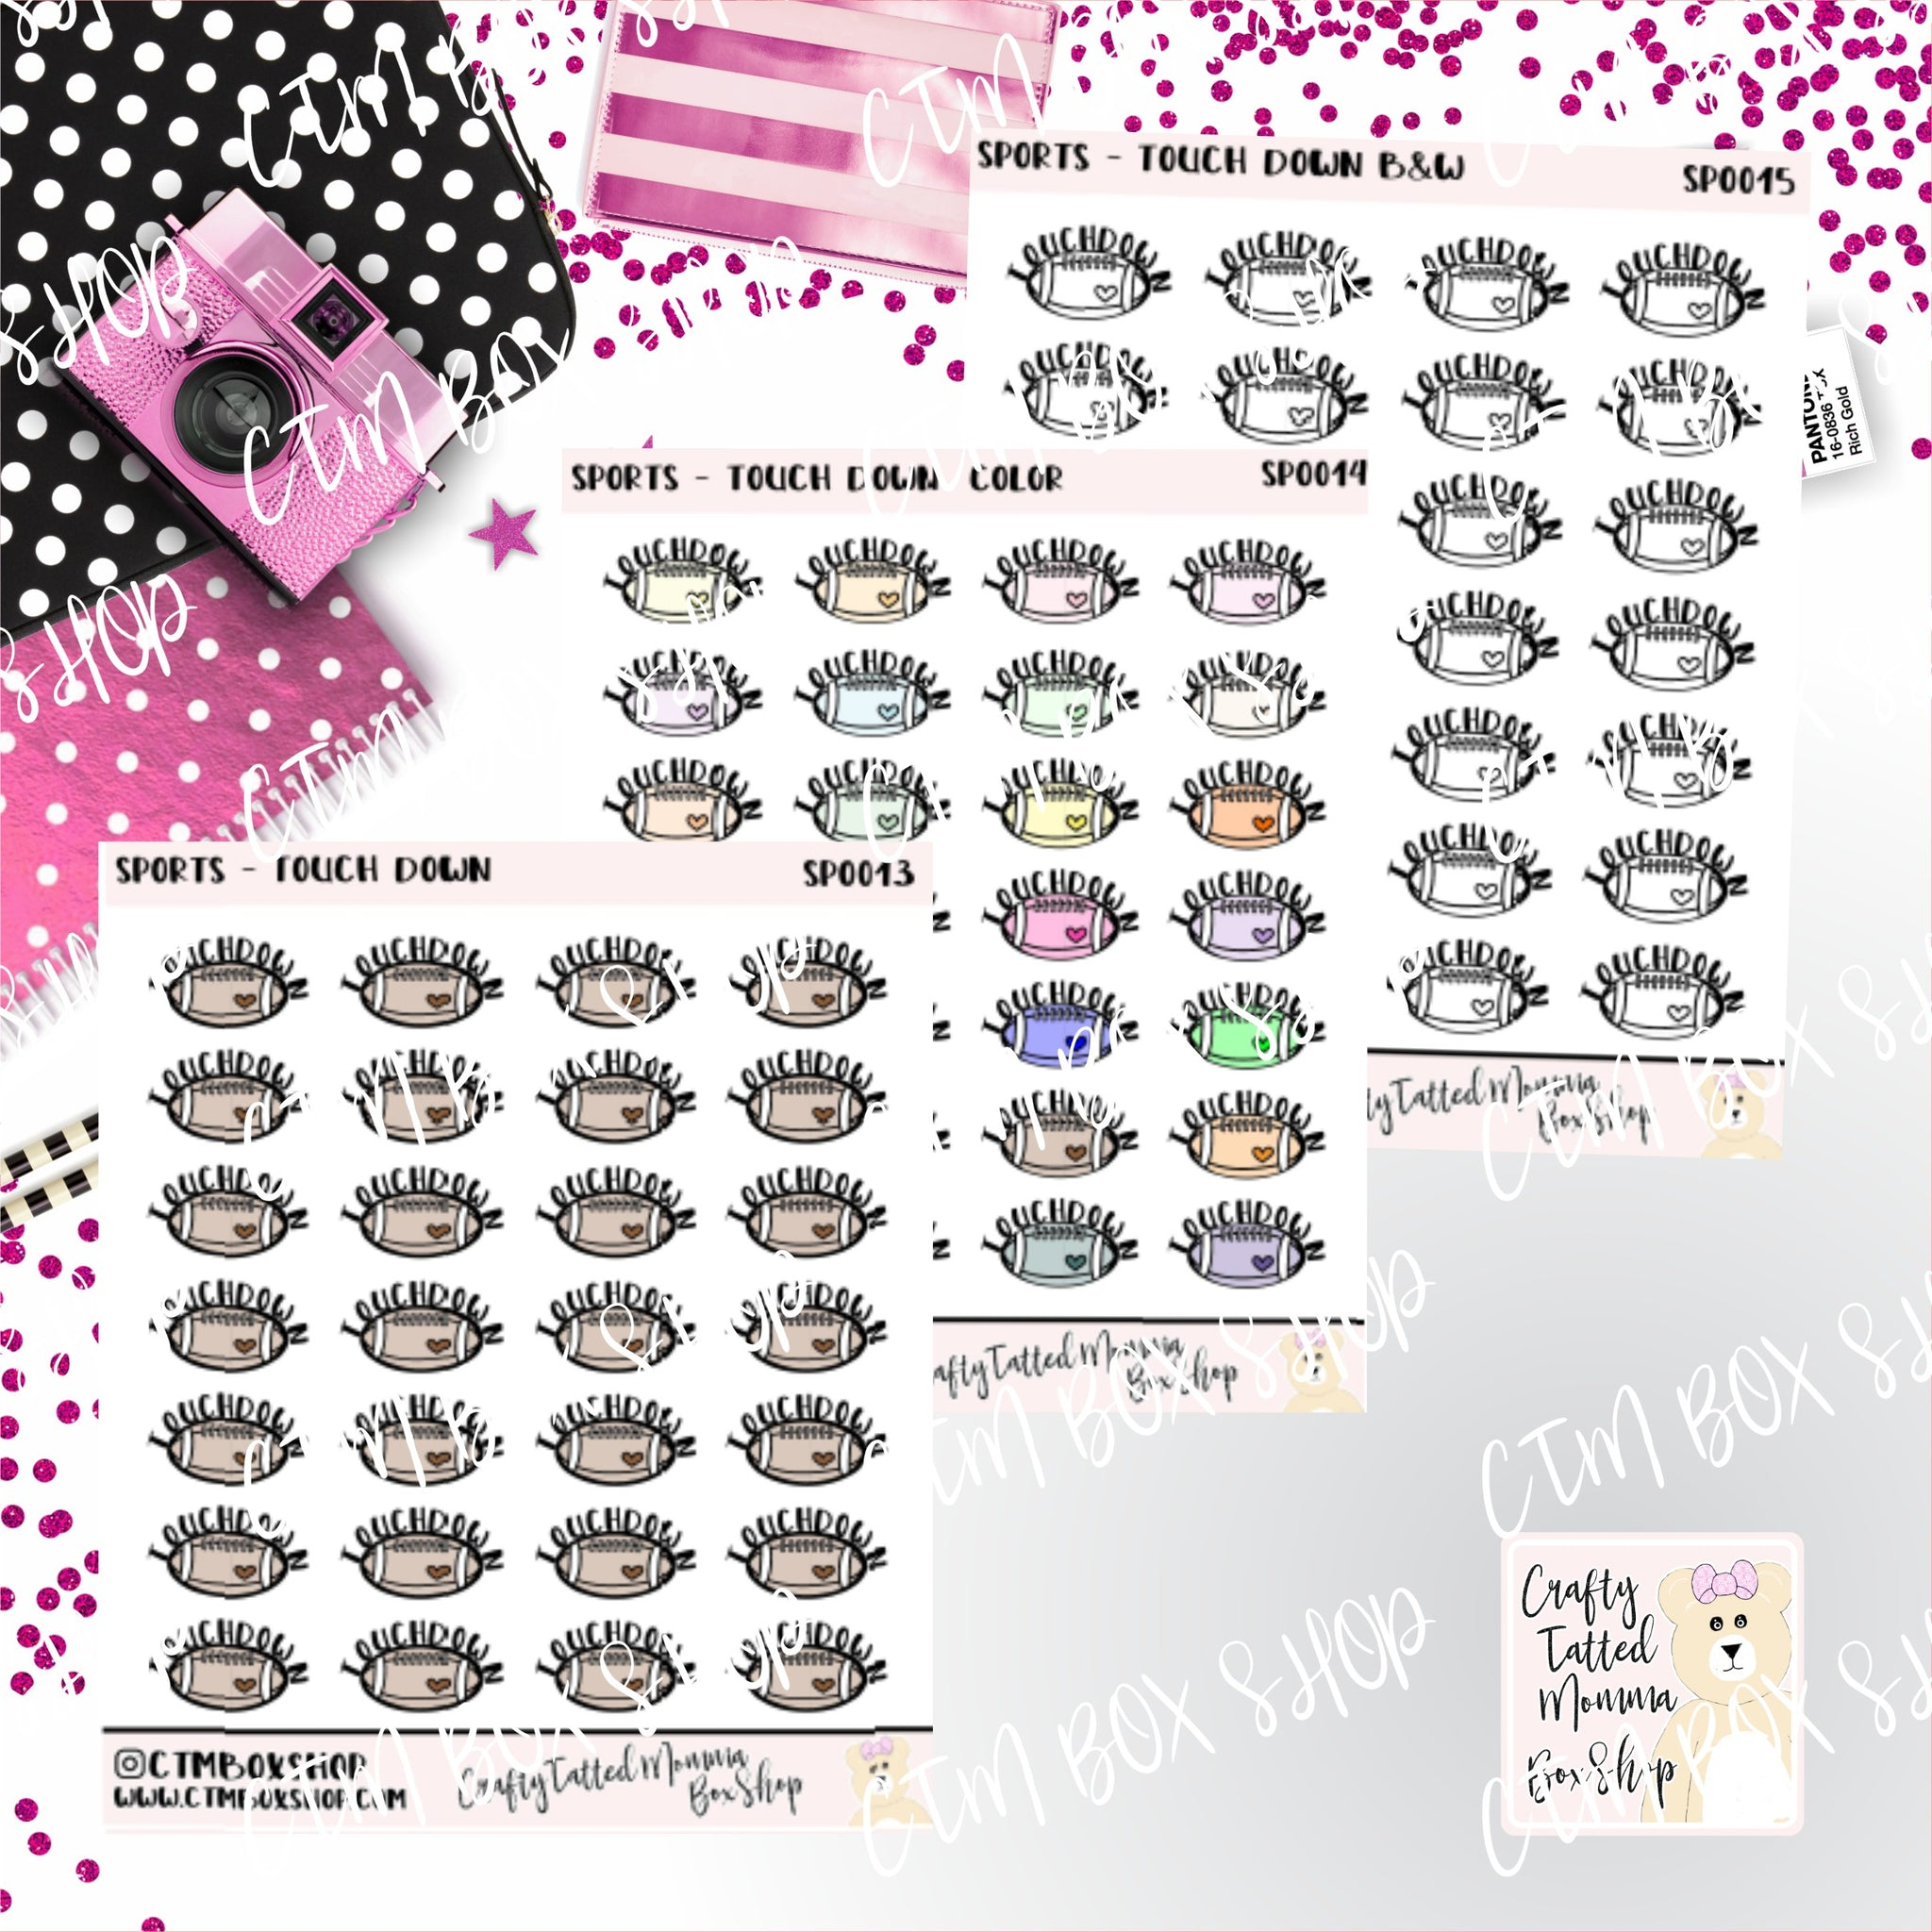 Touchdown Stickers   Football Stickers    Planner Stickers     Stickers   Deco Stickers Functional Stickers